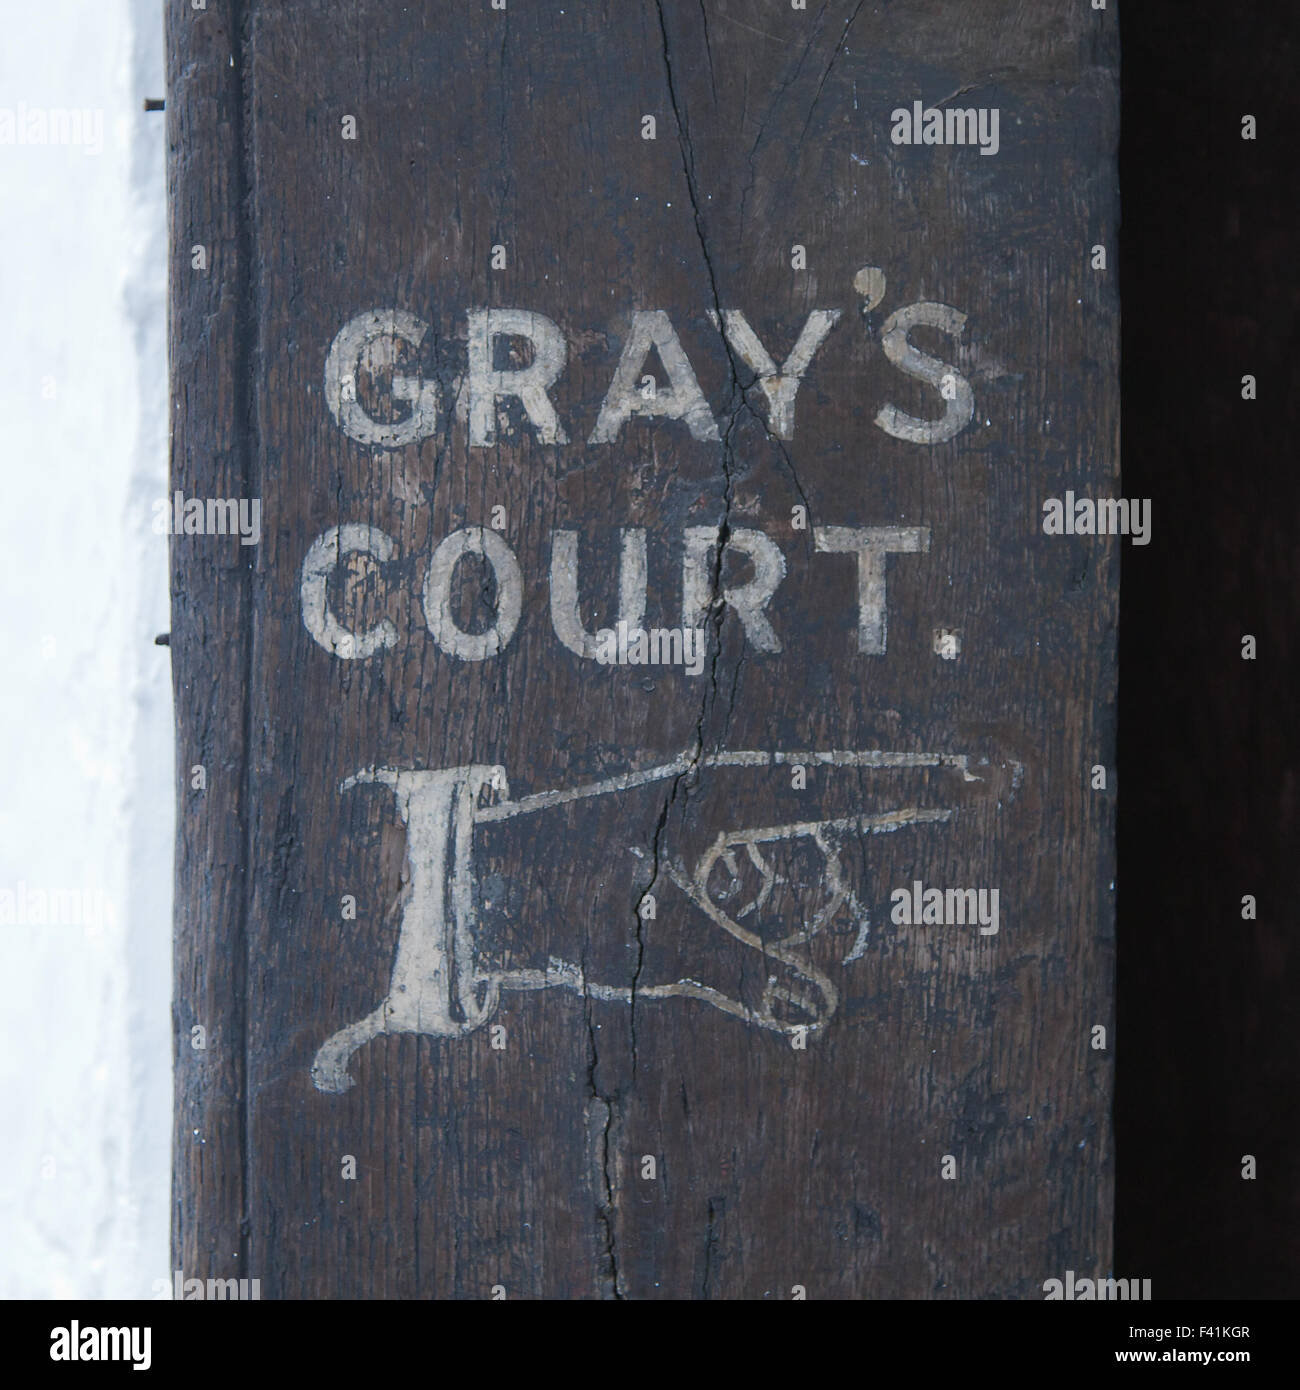 Grays Court Hotel in York entrance sign - Stock Image